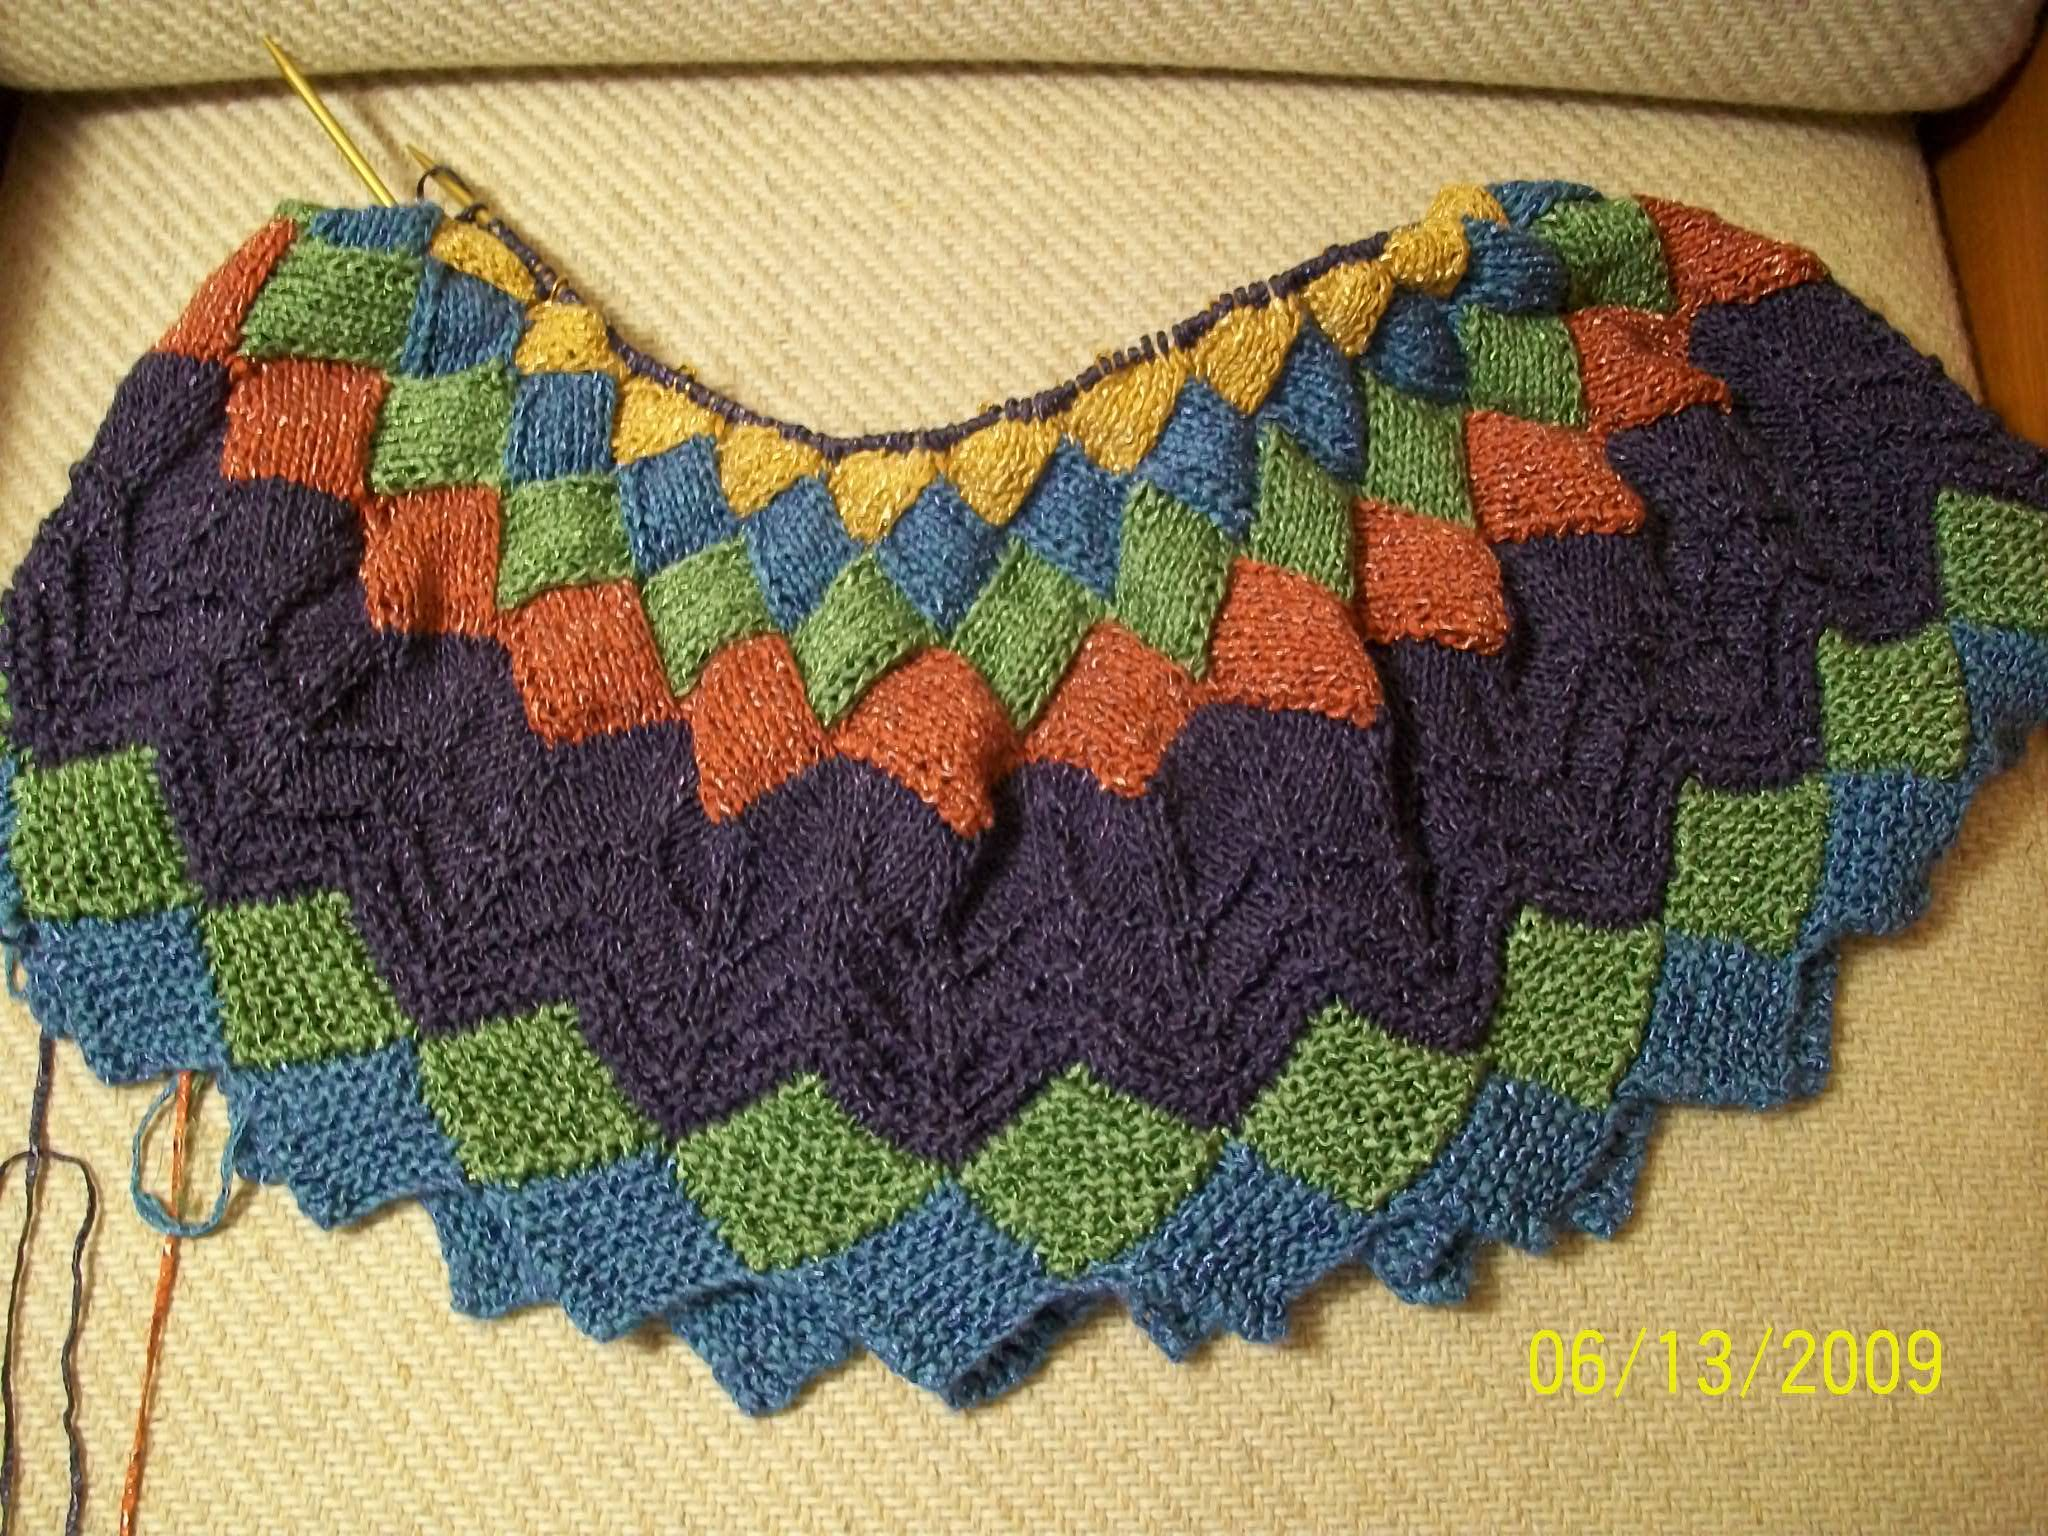 Entrelac+Knitting+Patterns+for+Sweater | entrelac section of the ...